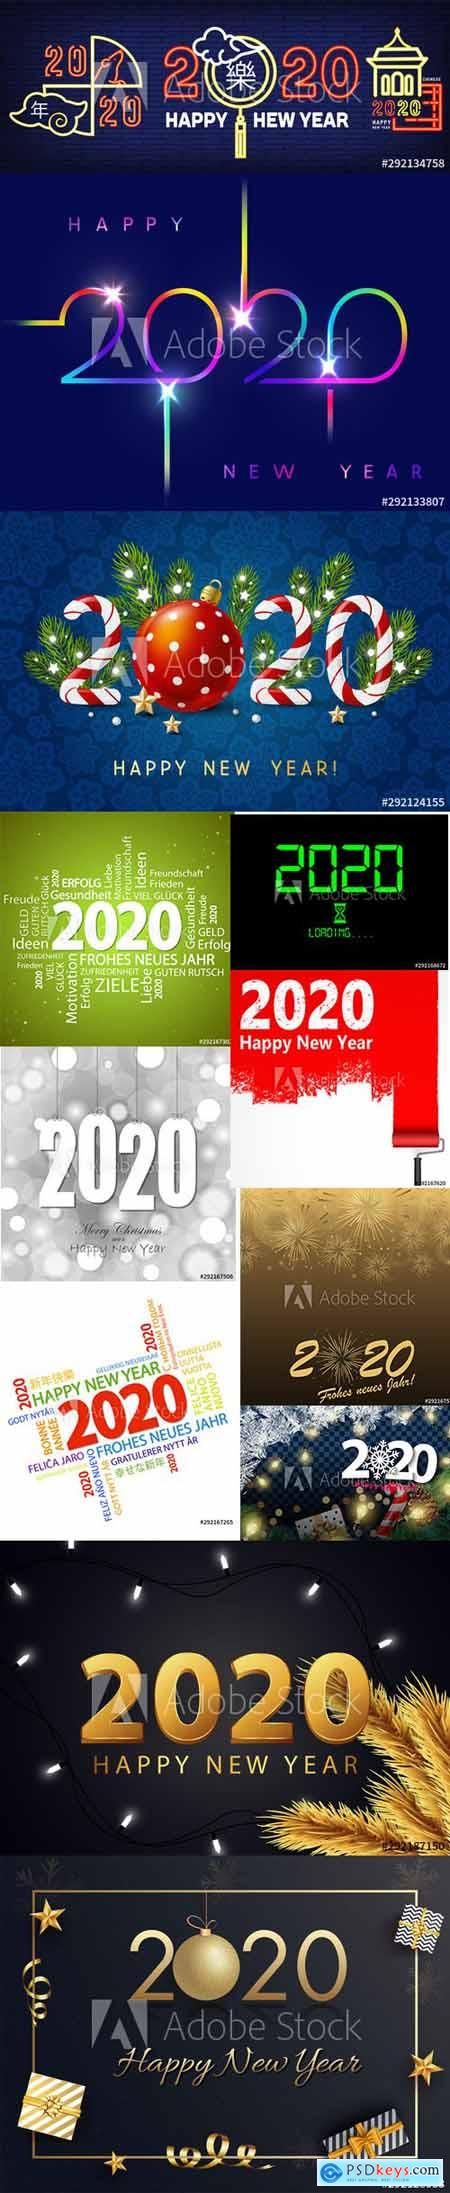 Merry Christmas and Happy New Year 2020 Illustrations Vector Set 5